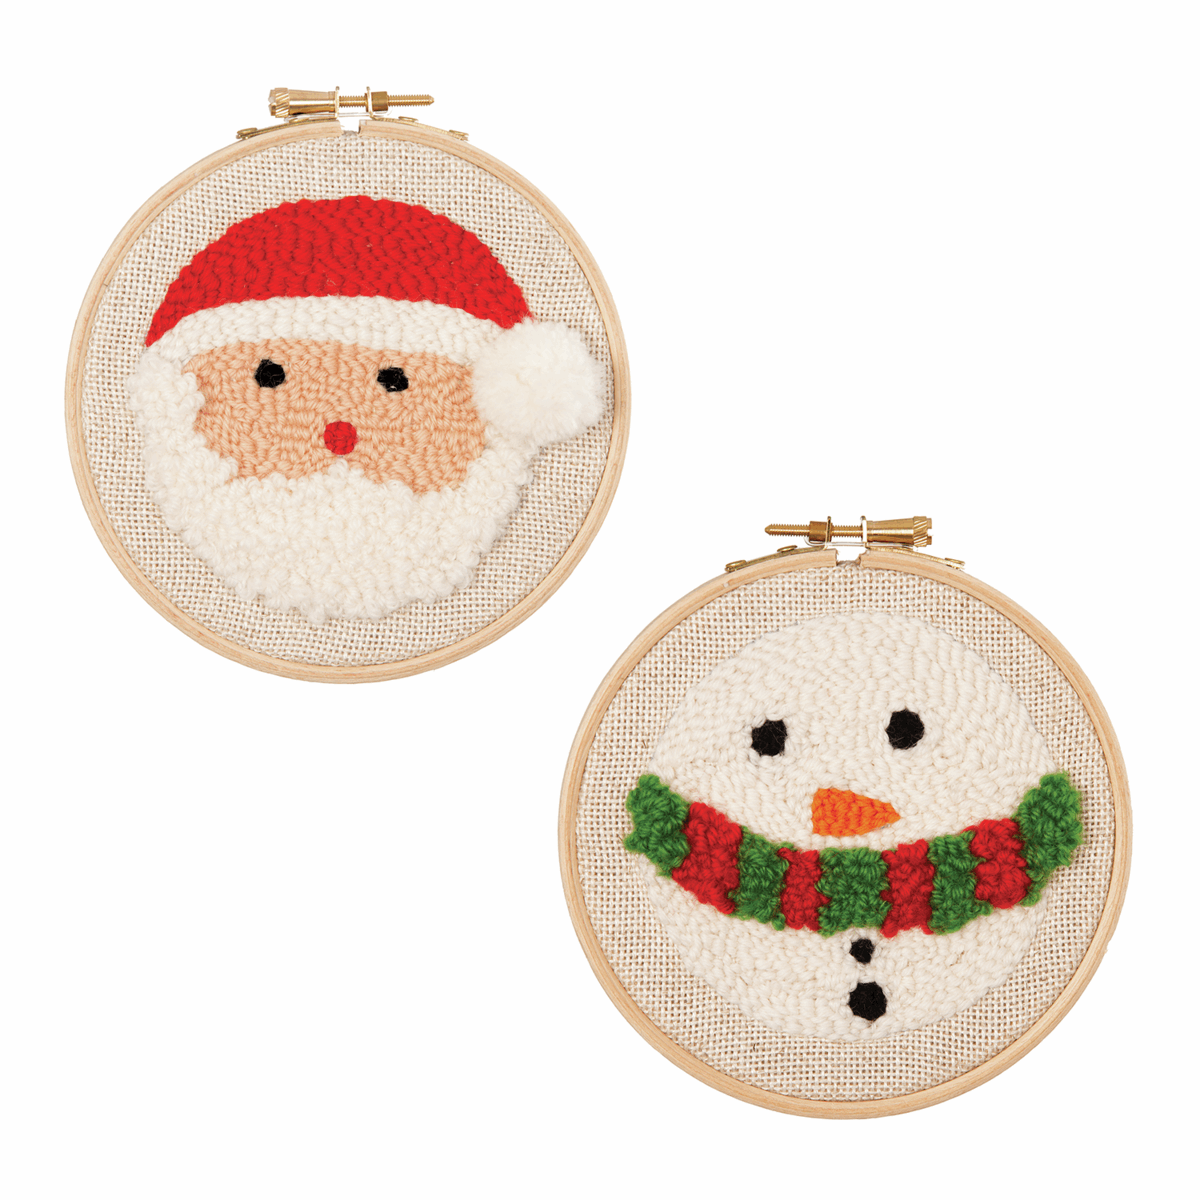 Picture of Punch Needle Kit: Santa & Snowman